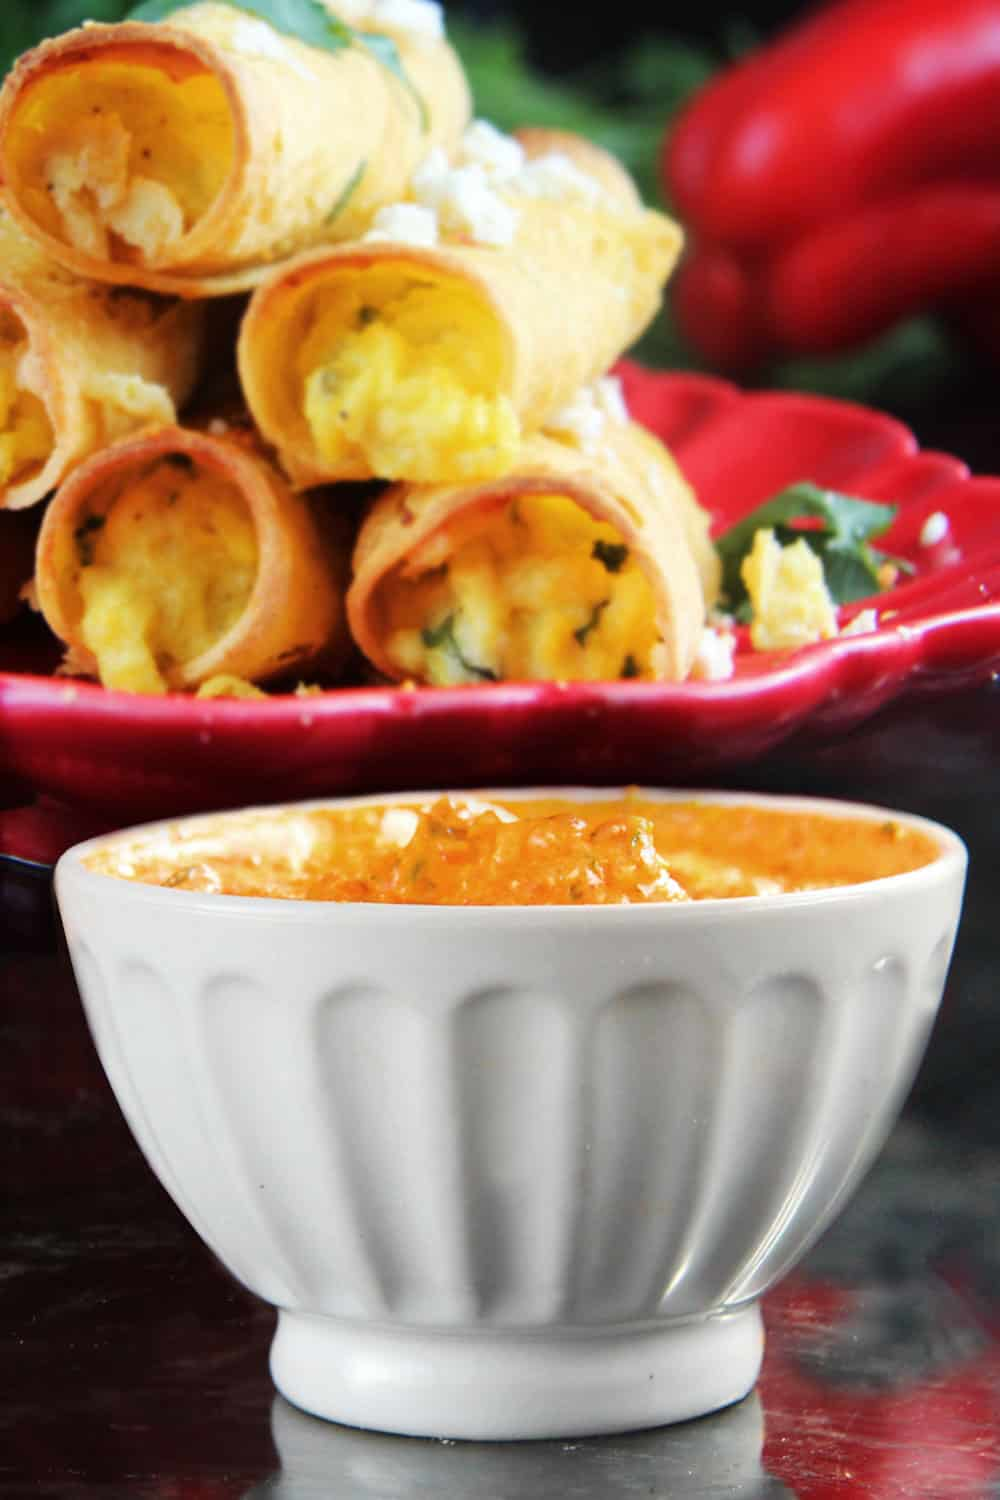 Breakfast Taquitos on a red plate focusing on the red pepper and feta dipping sauce in a white serving bowl.